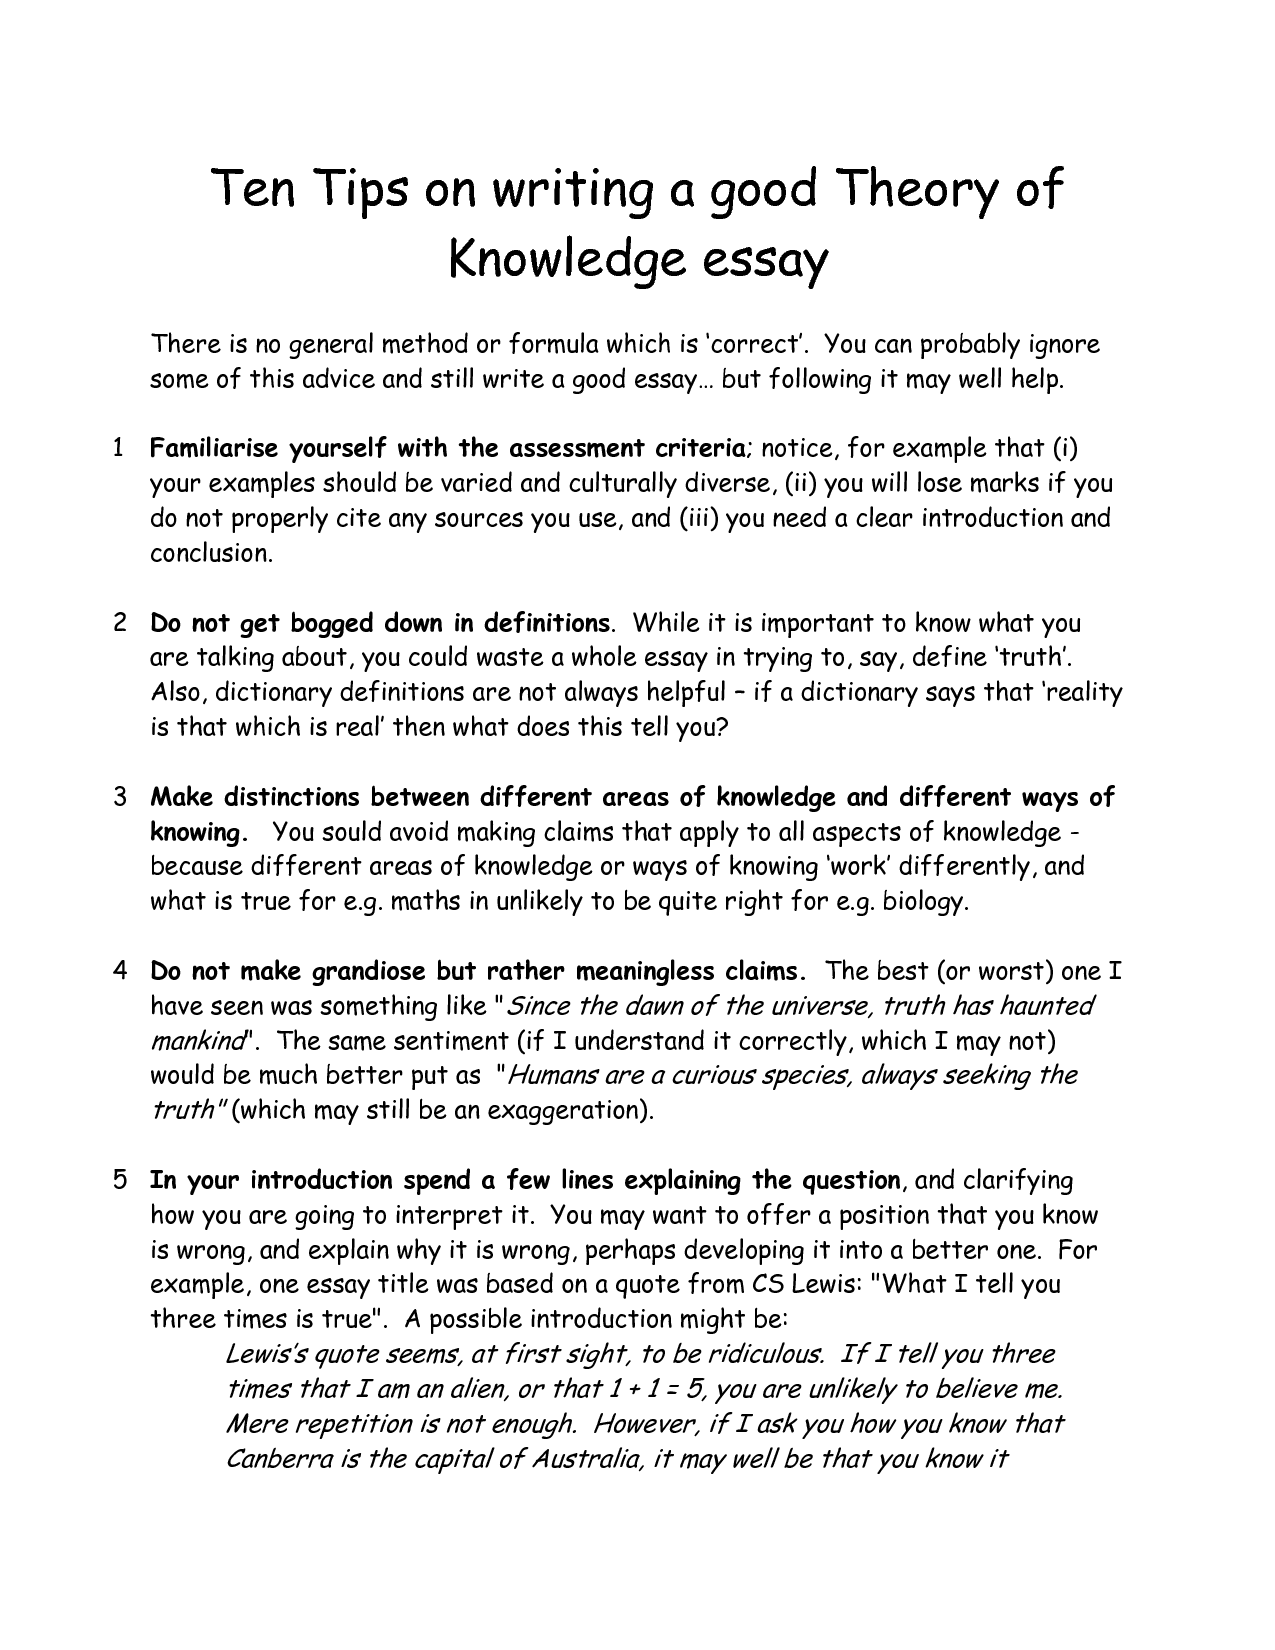 003 Qqllg0v8ct How To Write An Essay About Yourself Best In Spanish English Third Person Full